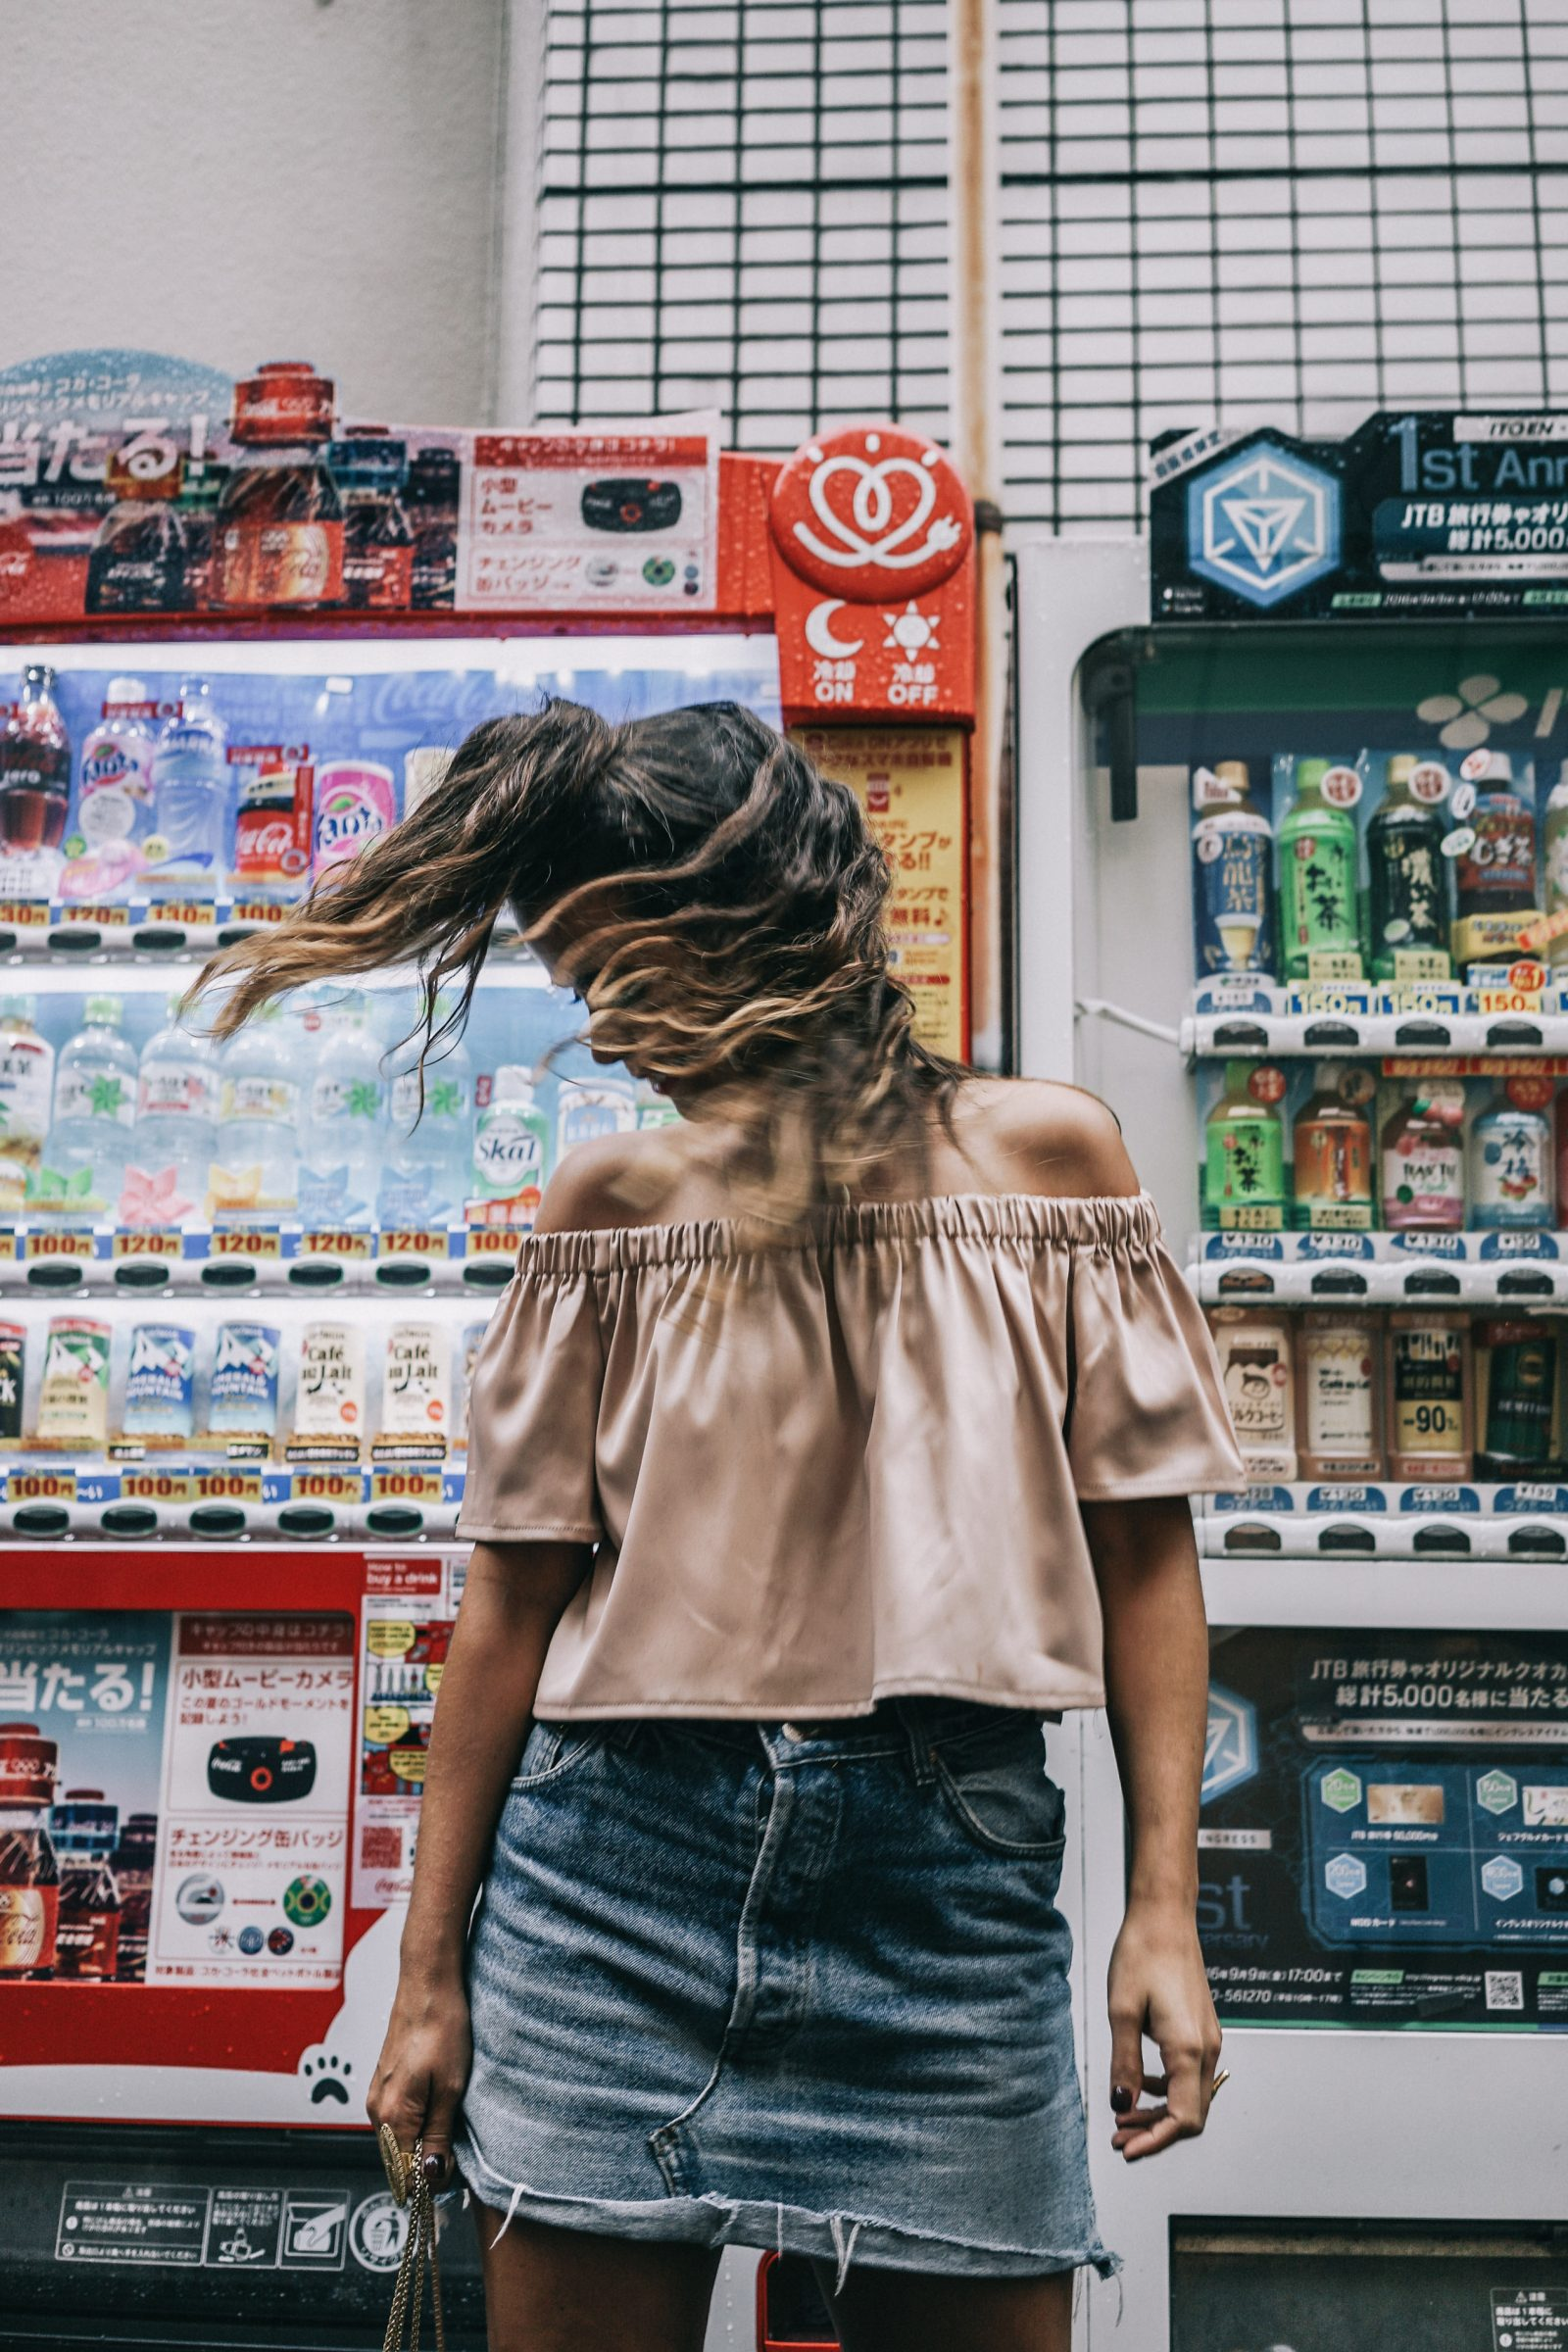 Tokyo_Travel_Guide-Fish_Market-Harajuku-Levis_Denim_Skirt-Off_The_Shoulders_Top-YSL_Sneakers-Outfit-Collage_Vintage-Street_Style-127